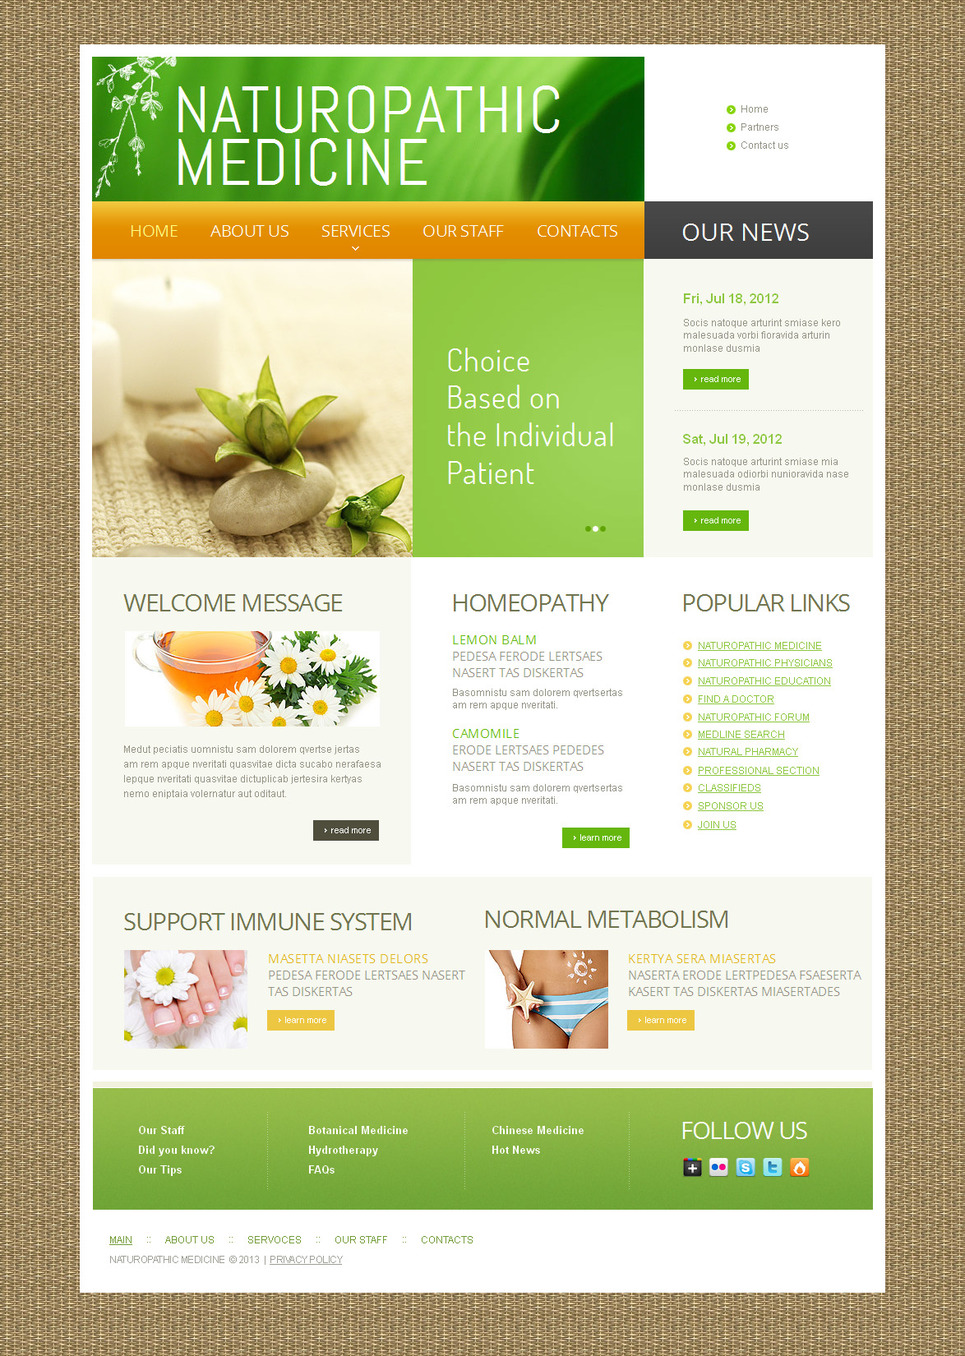 Herbal Medicine Website Template with Textured Background - image